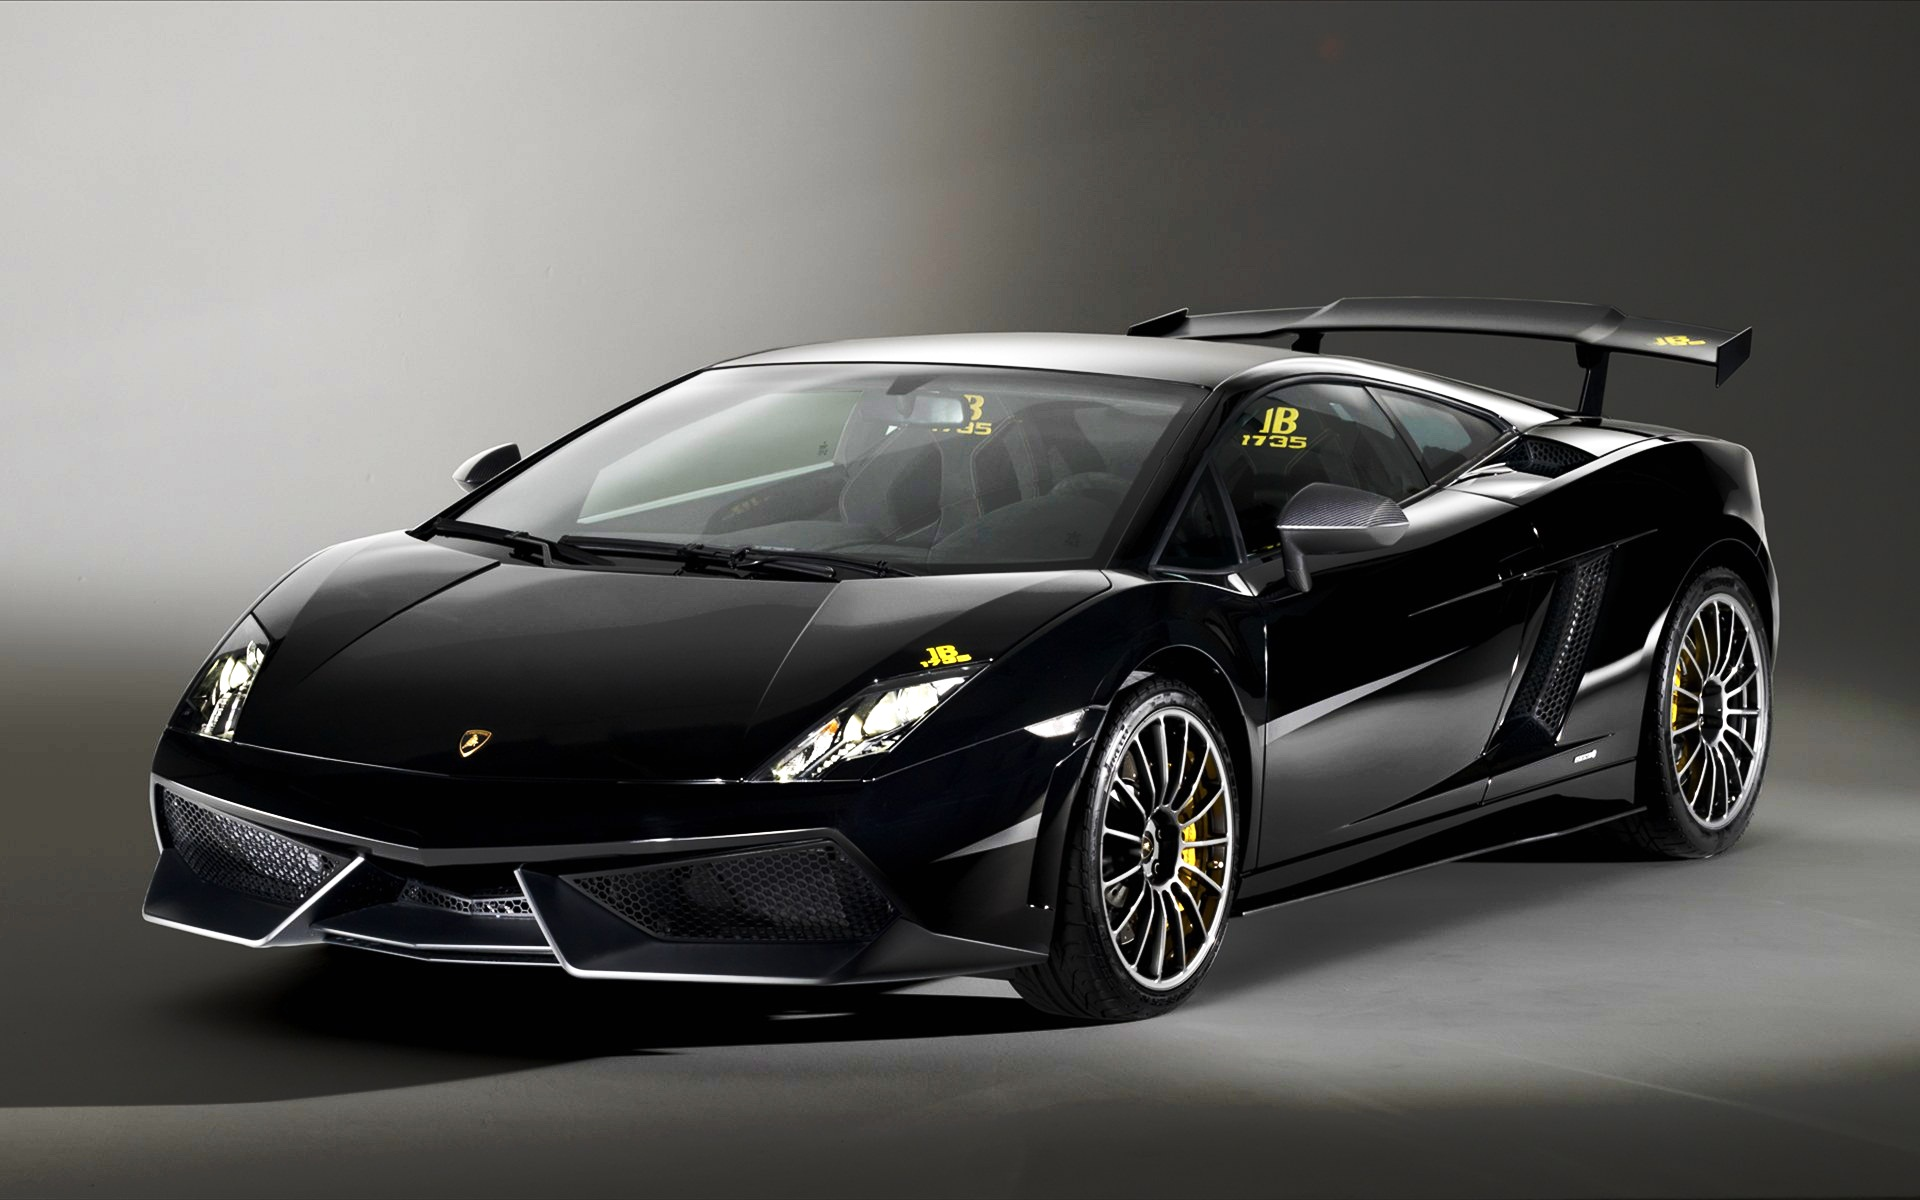 lamborghini gallardo full hd wallpapers wallpaperautocars